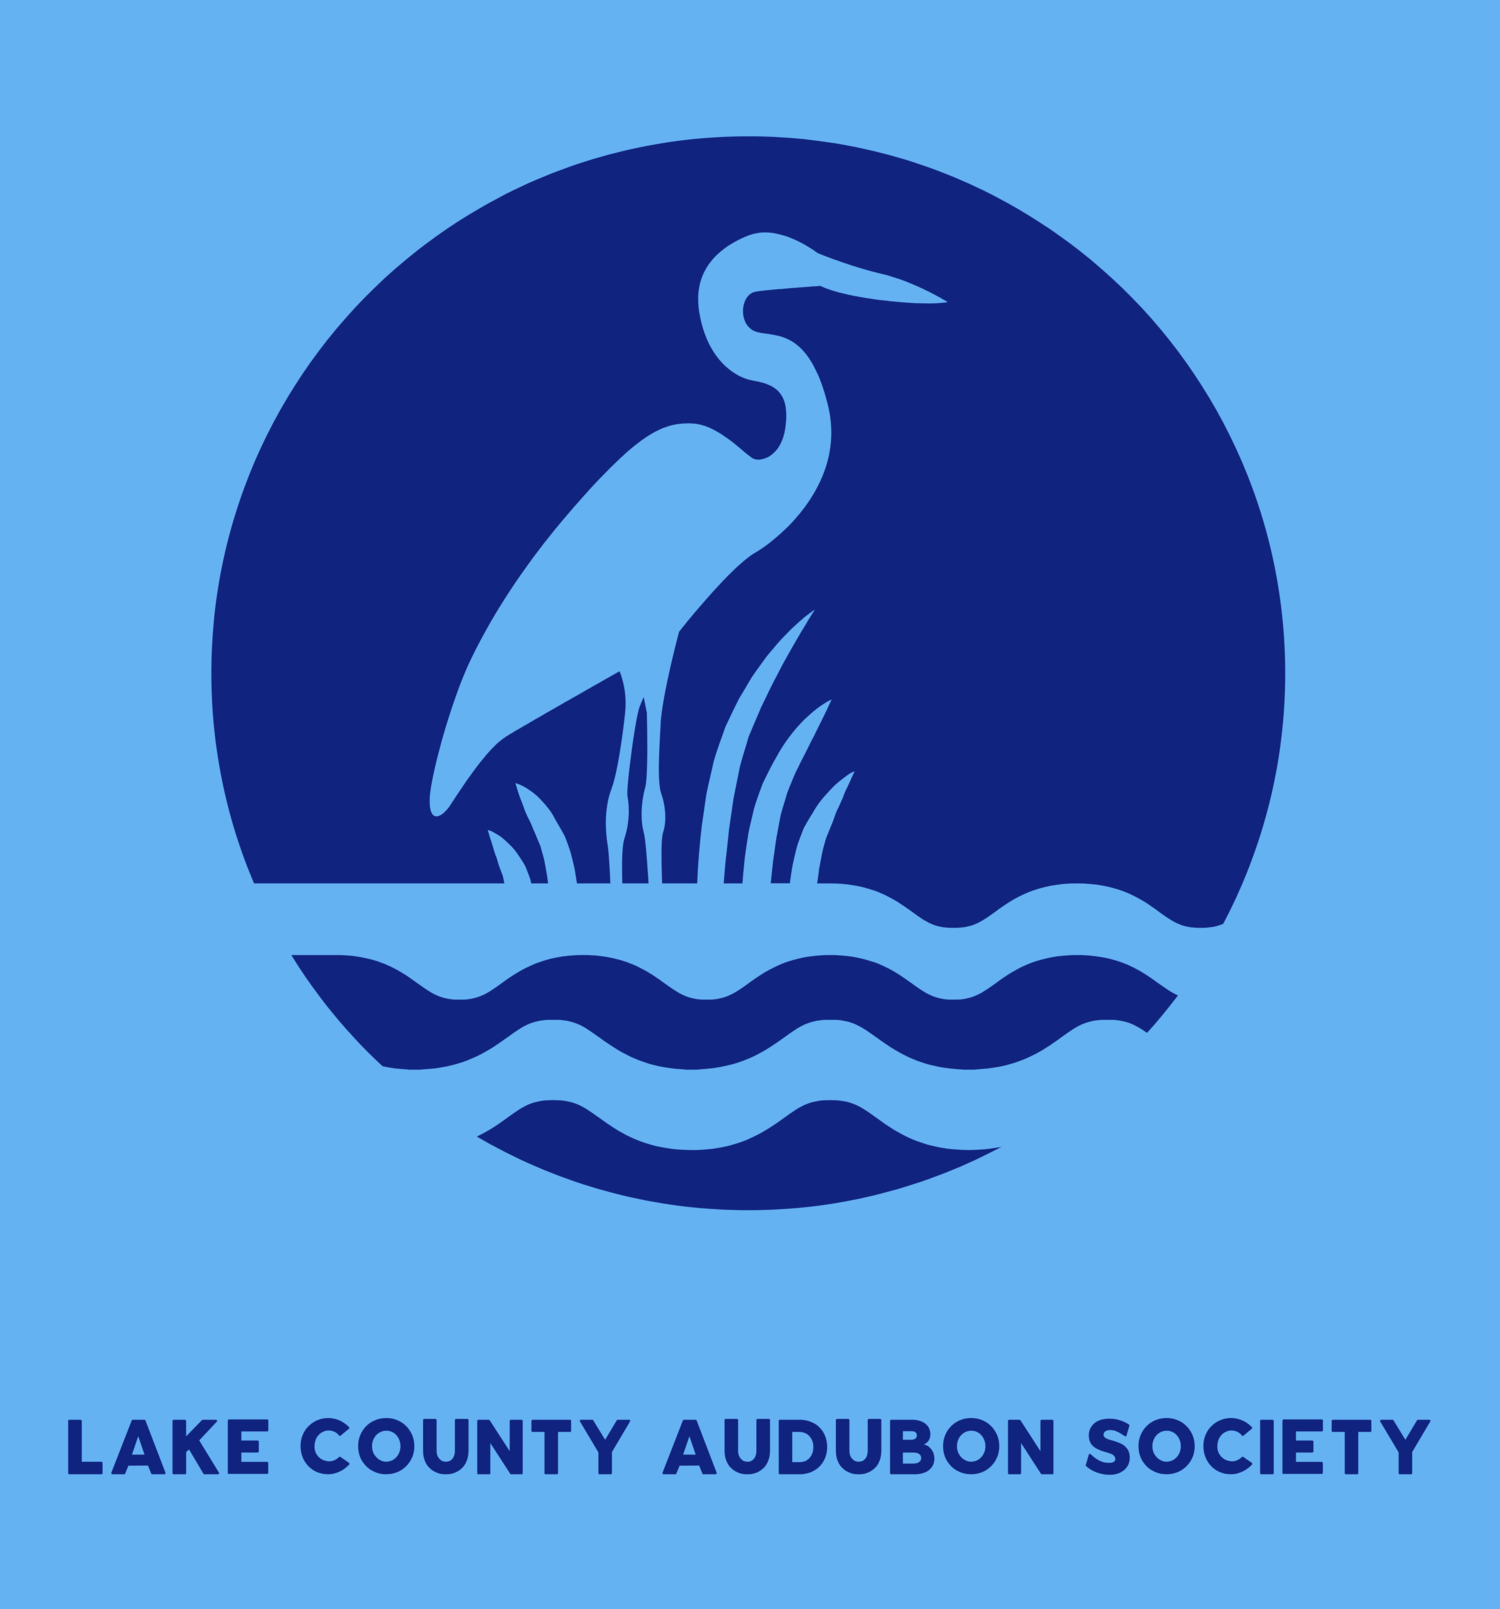 Lake County Audubon Society